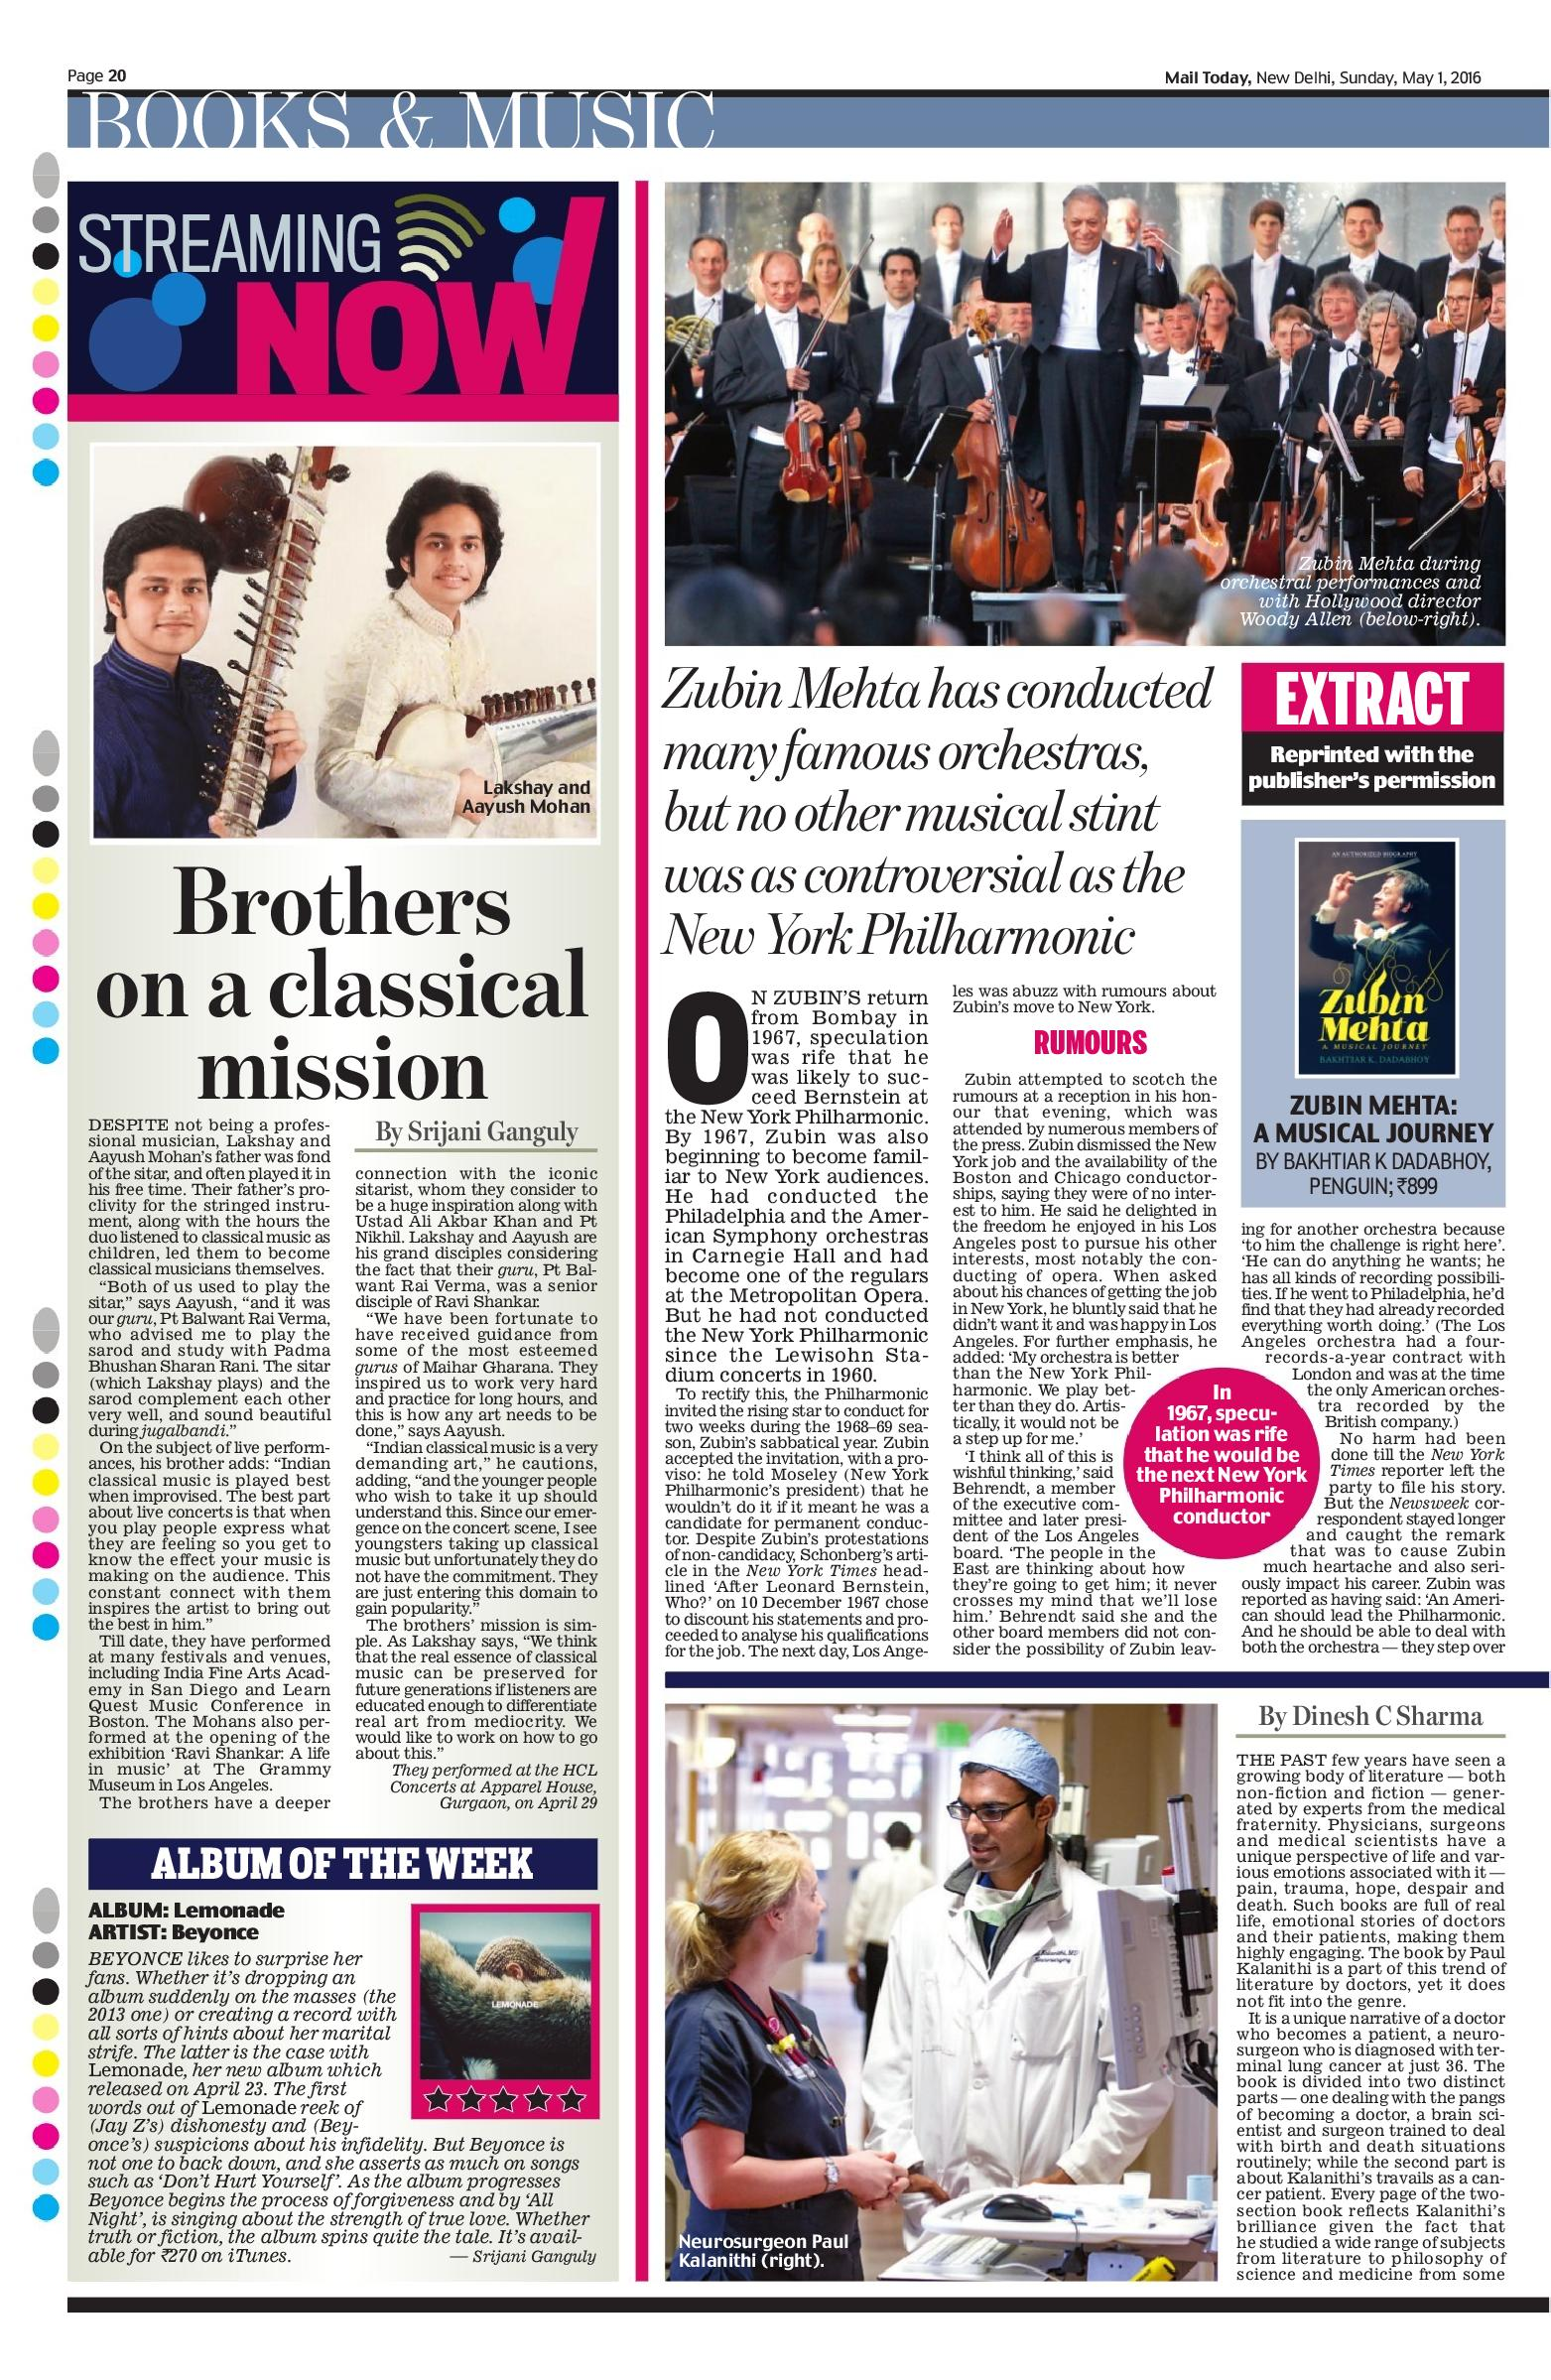 Mail Today Interview.jpg